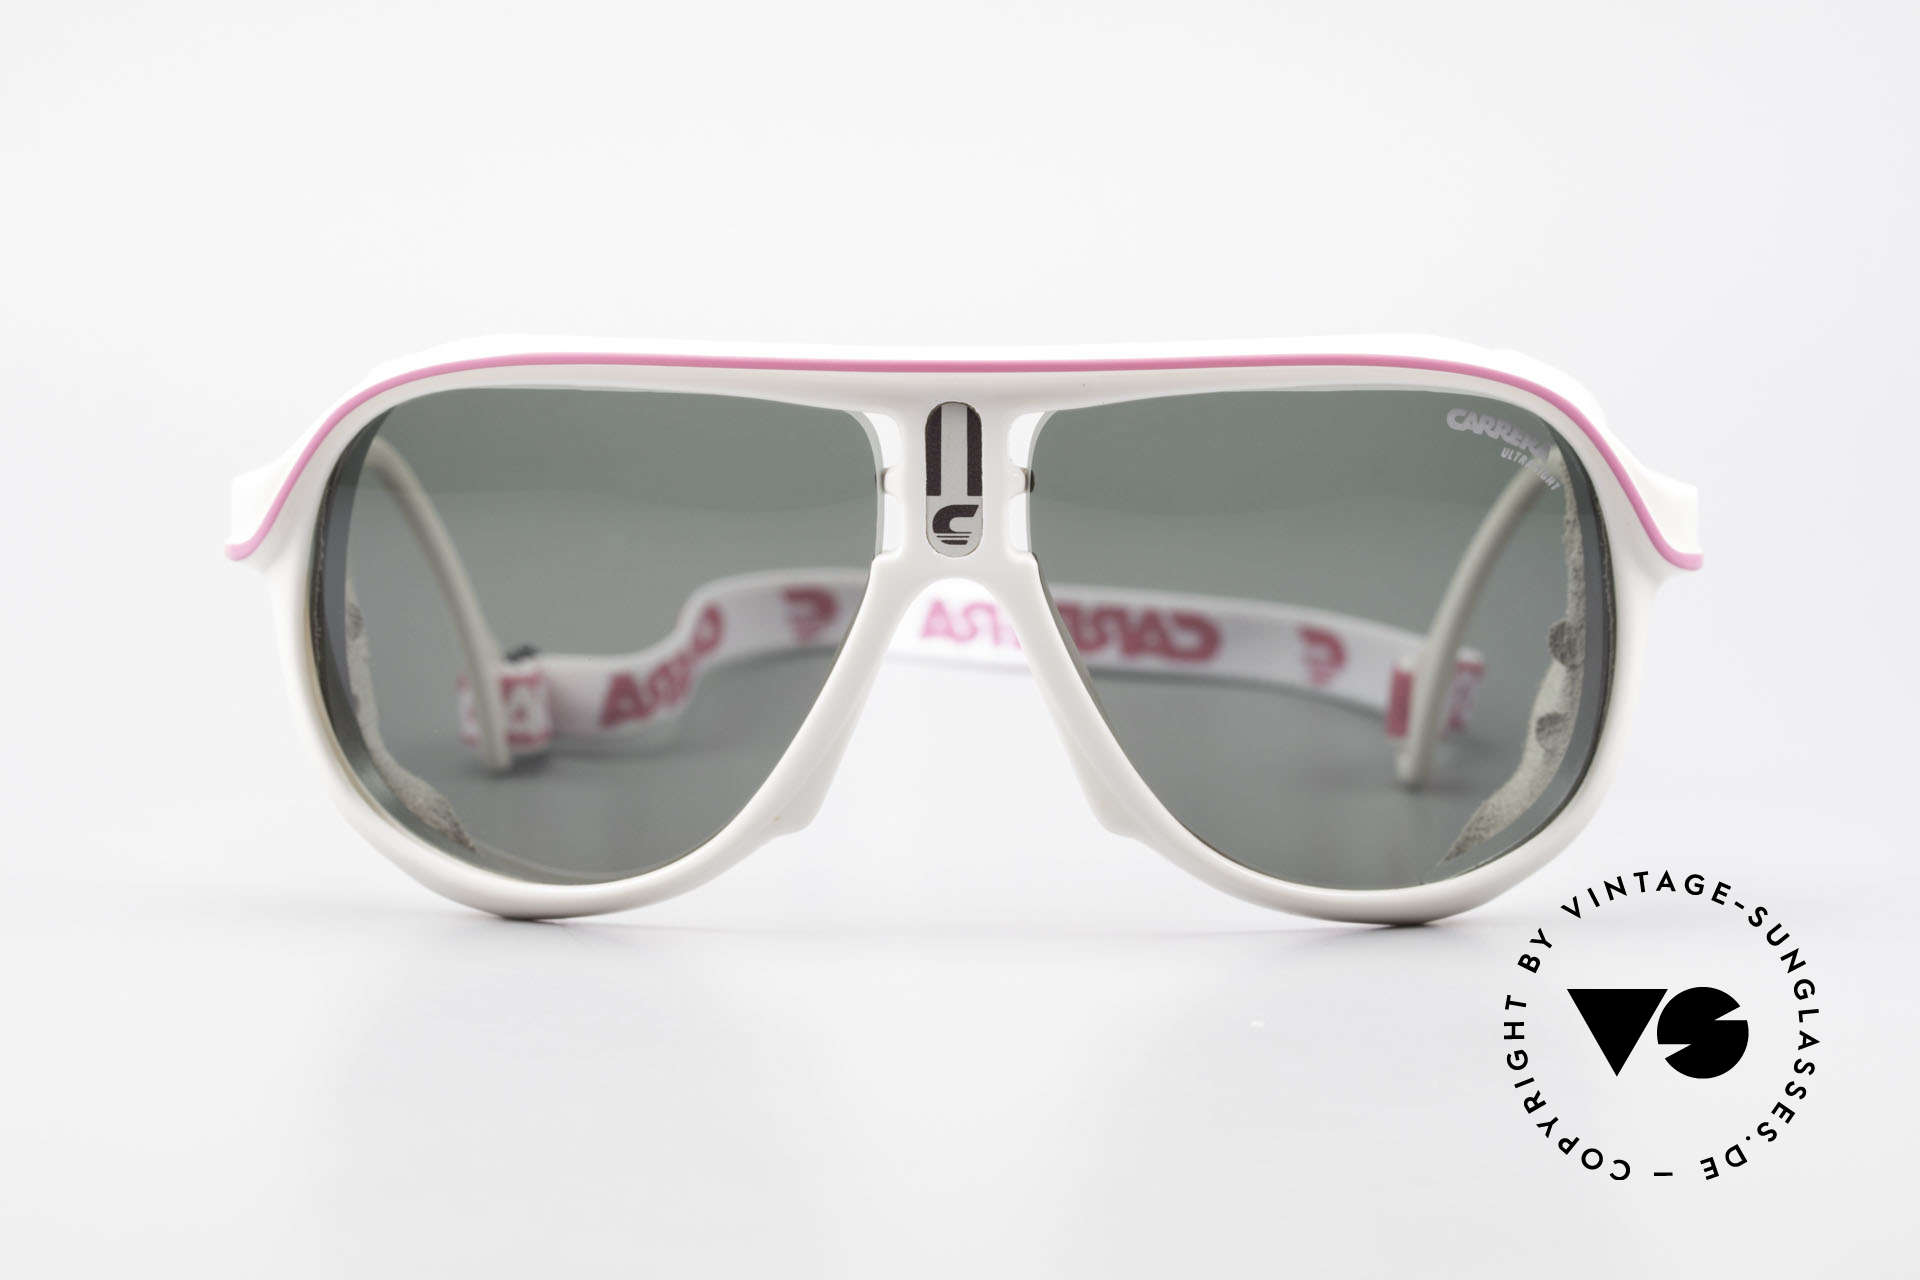 Carrera 5544 Sports Glacier Sunglasses 90's, perfect fit and high wearing comfort (with elastic strap), Made for Men and Women